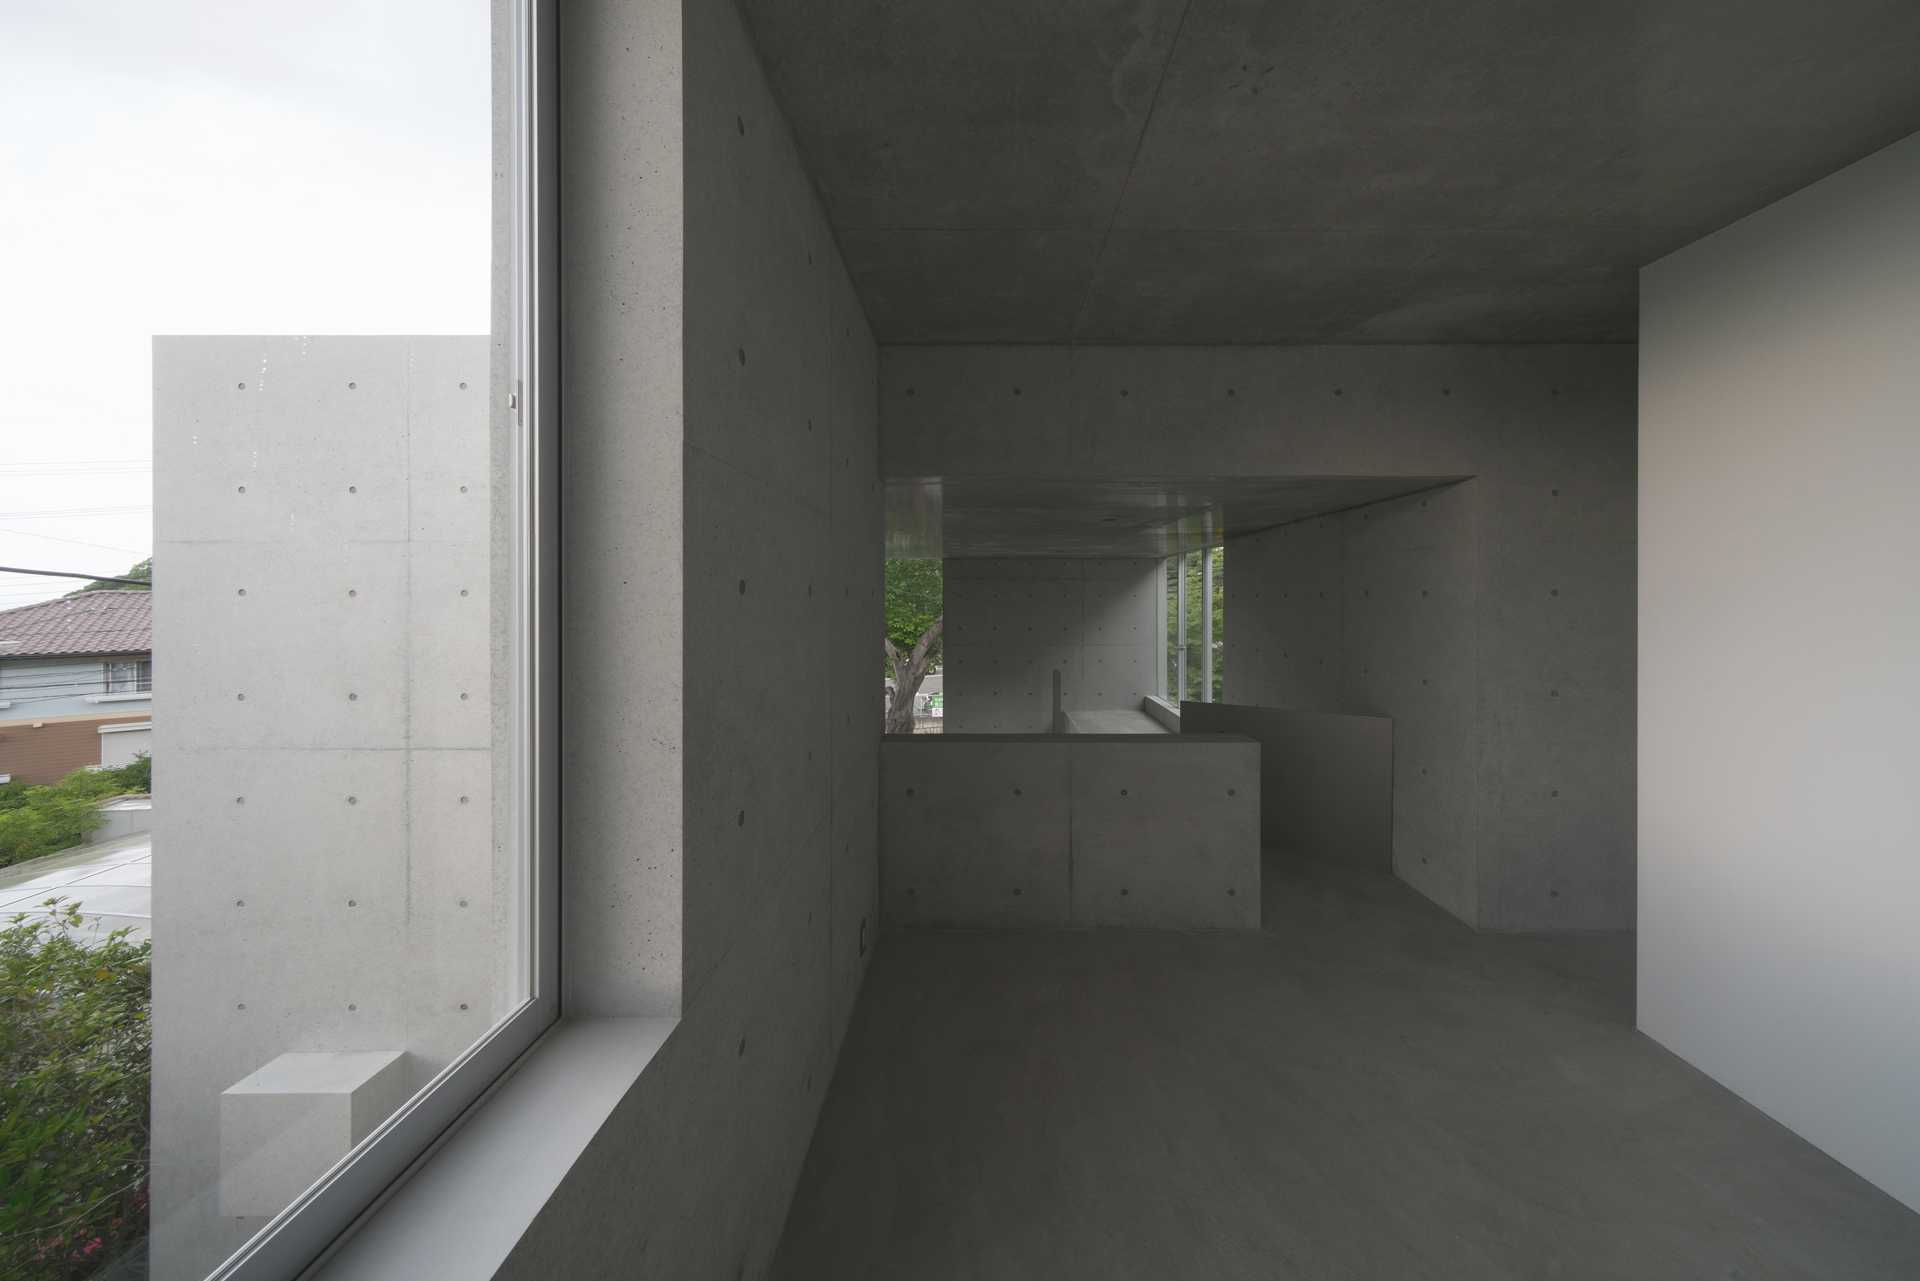 Concrete House  - 12 14 49